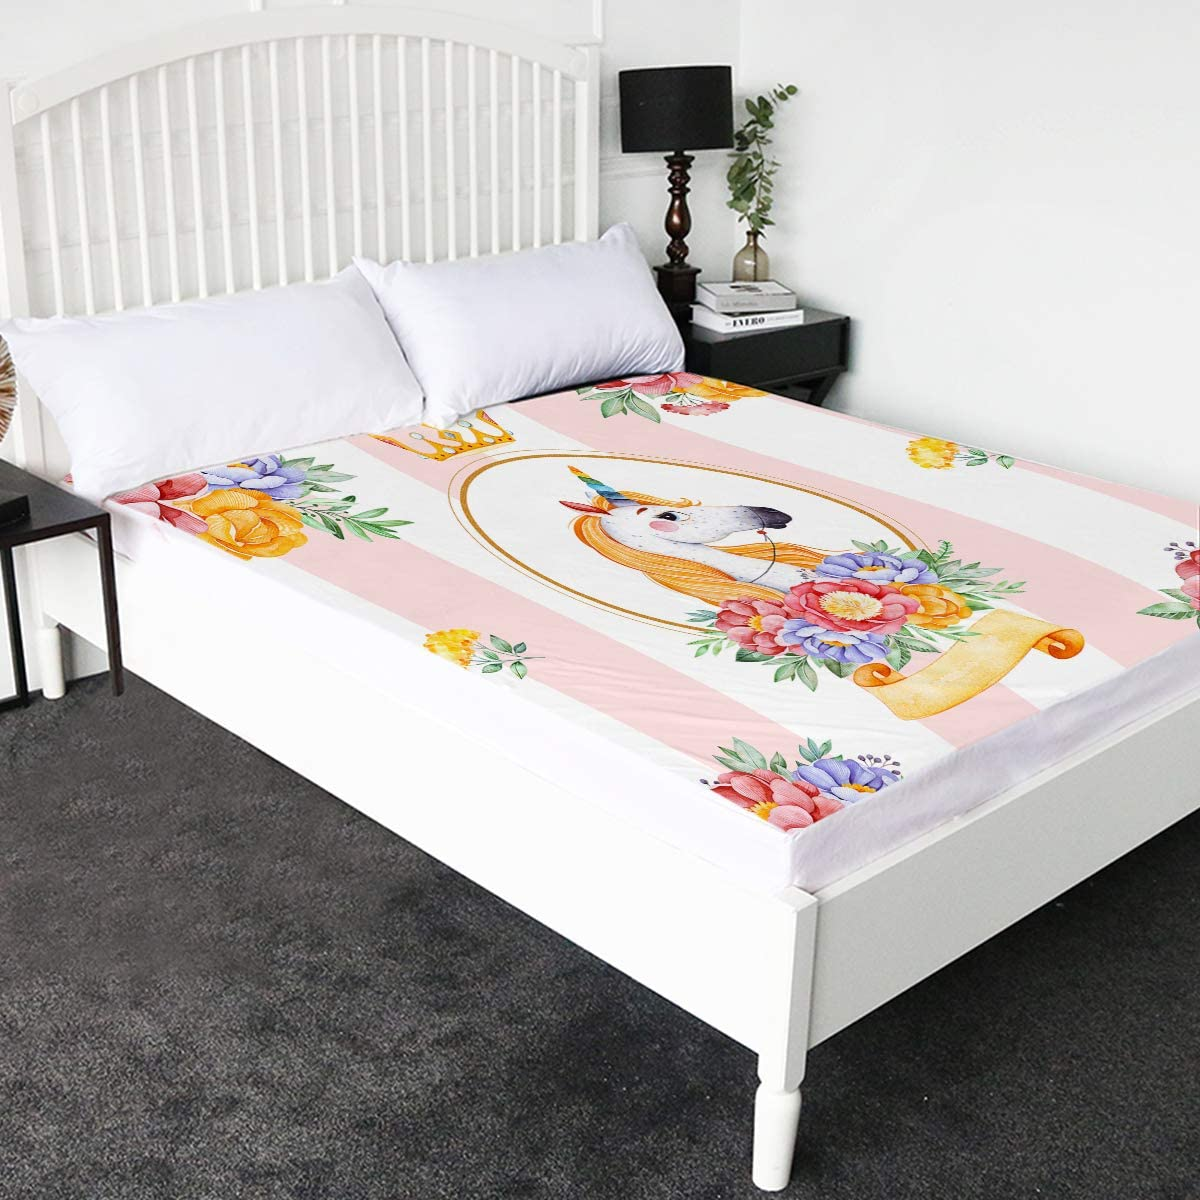 Sleepwish Unicorn California King Fort Worth Mall Size Sheet Quantity limited Fitted for Girls Pa